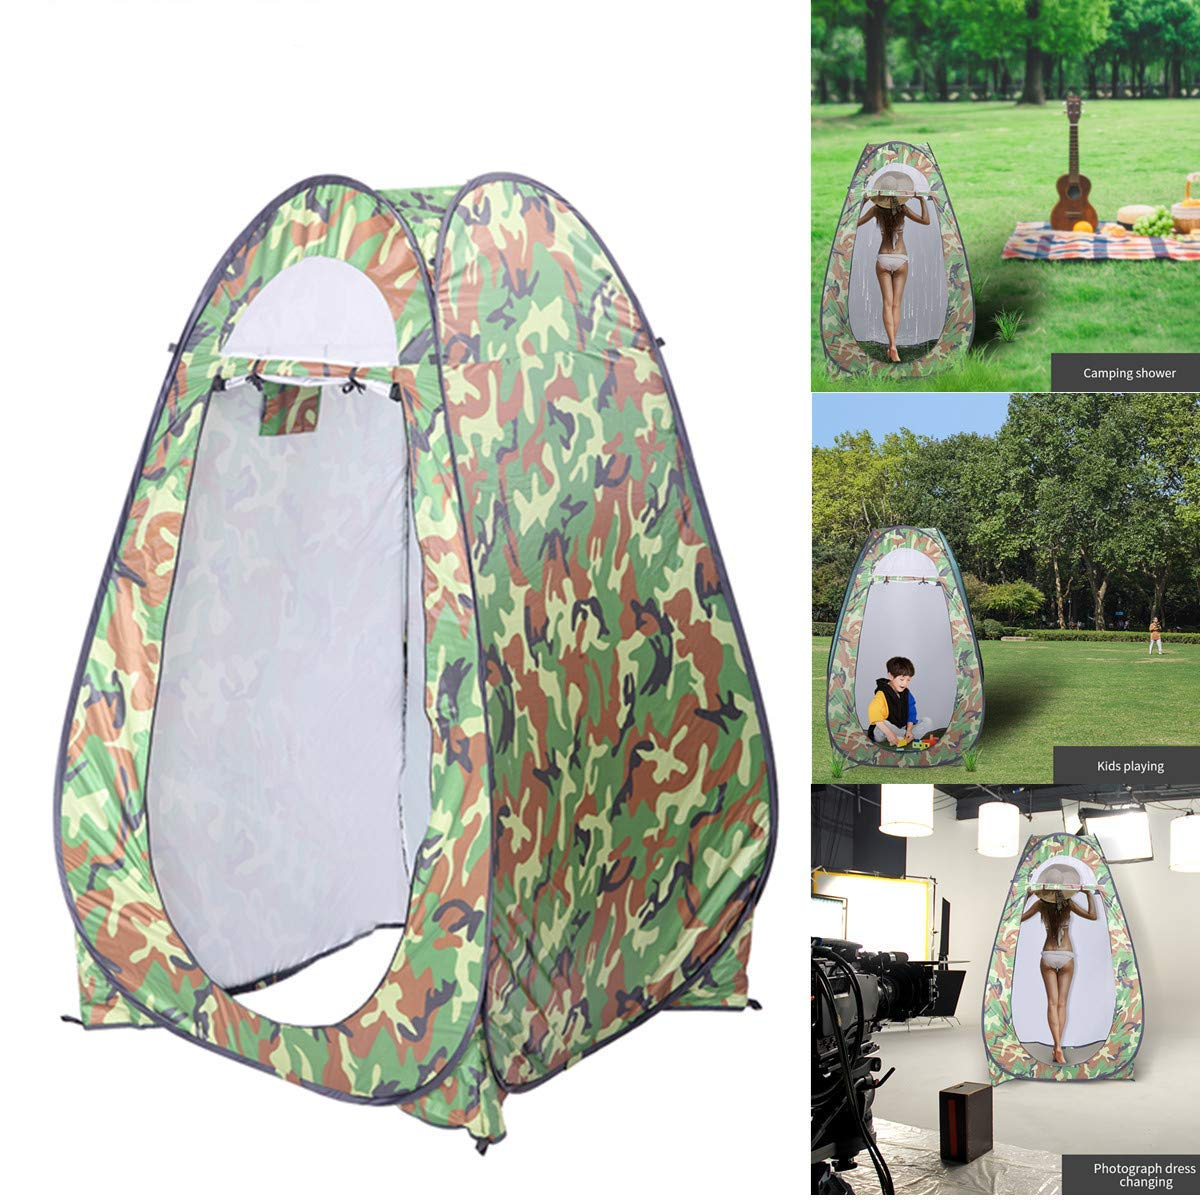 HomVent Pop Up Camping Shower Tent Instant Portable Changing Room Privacy Shelter Tent with Carrying Bag for Camping & Beach (Camouflage) by HomVent